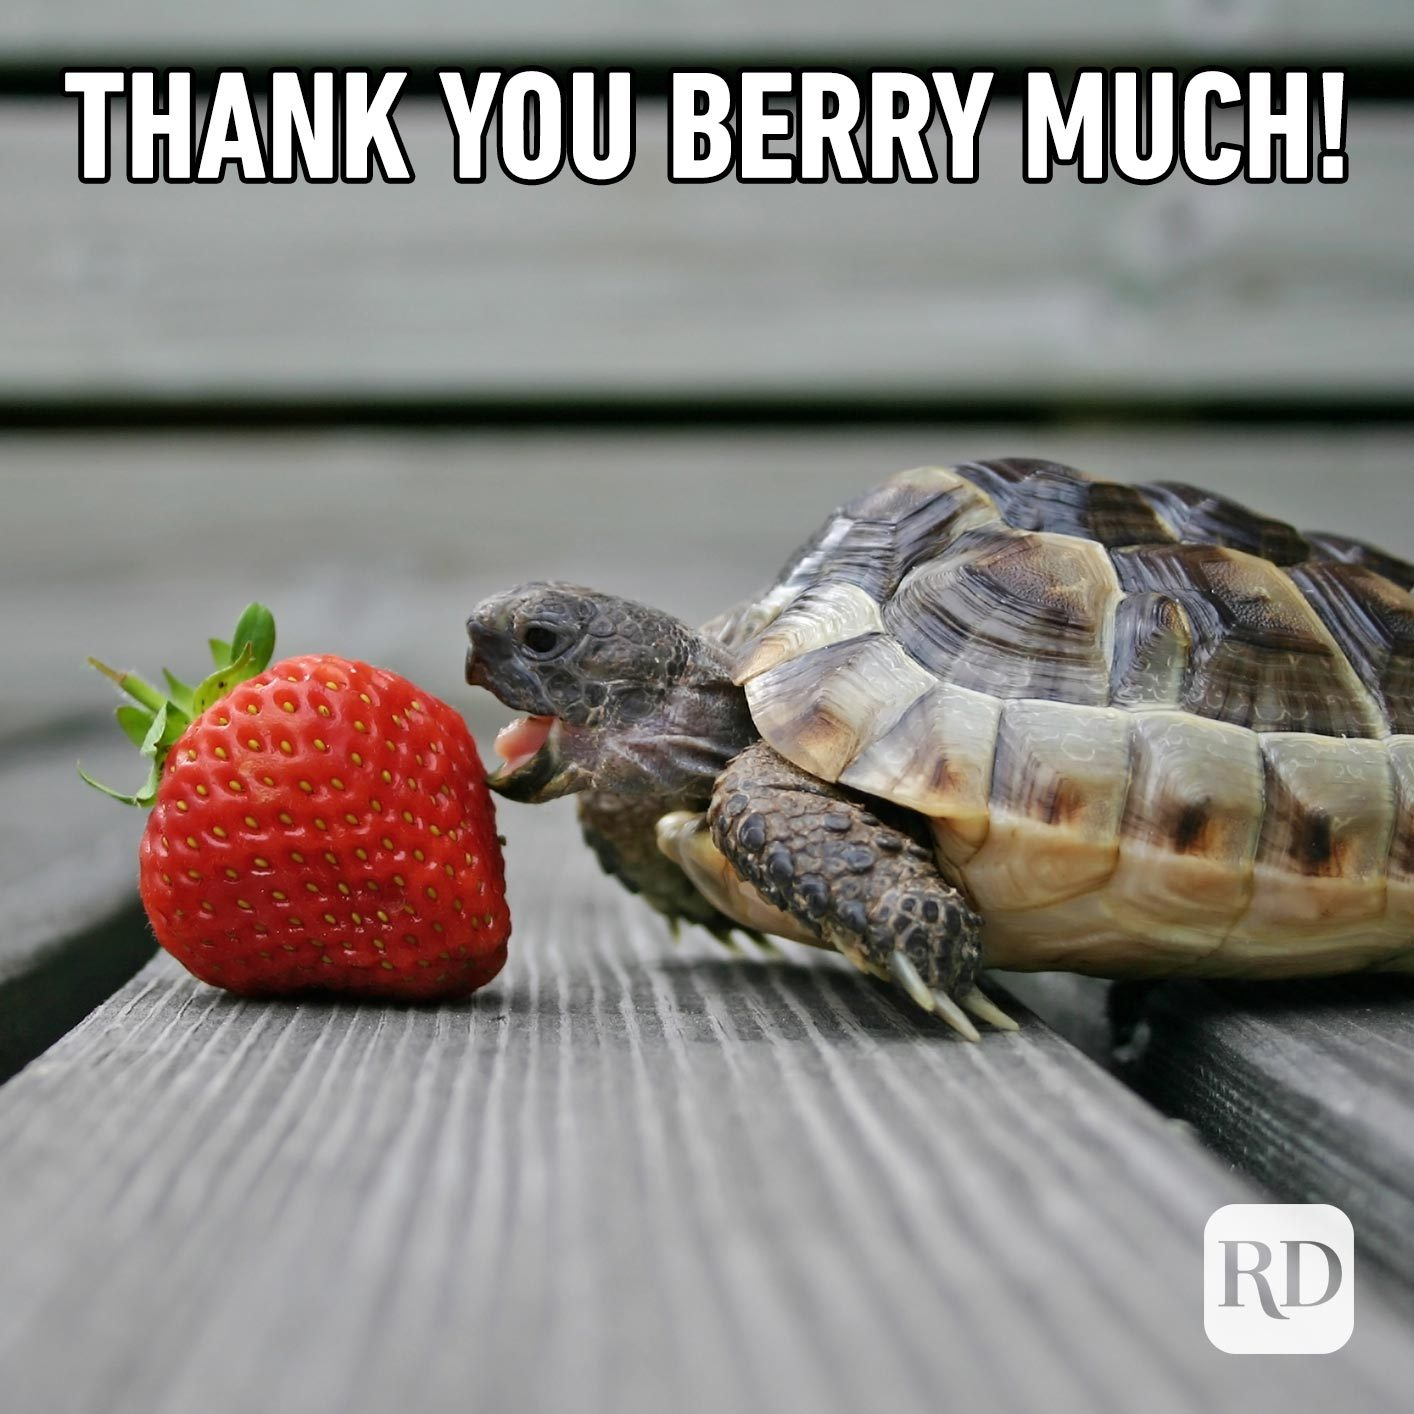 Turtle licking strawberry. Meme text: Thank you berry much!